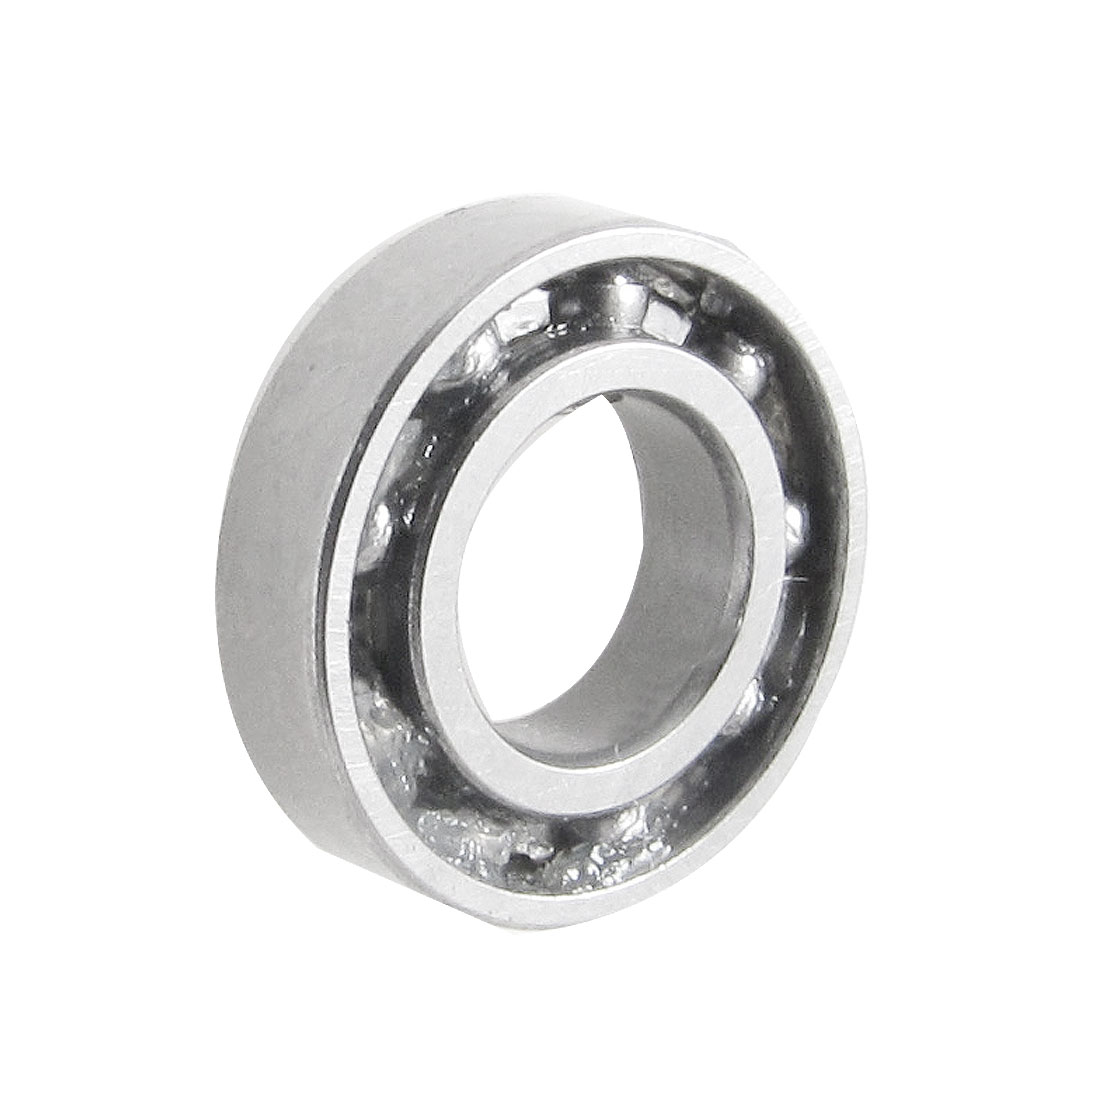 Skateboard Stainless Steel Open Type Deep Groove Ball Bearing 8mmx16mmx4mm